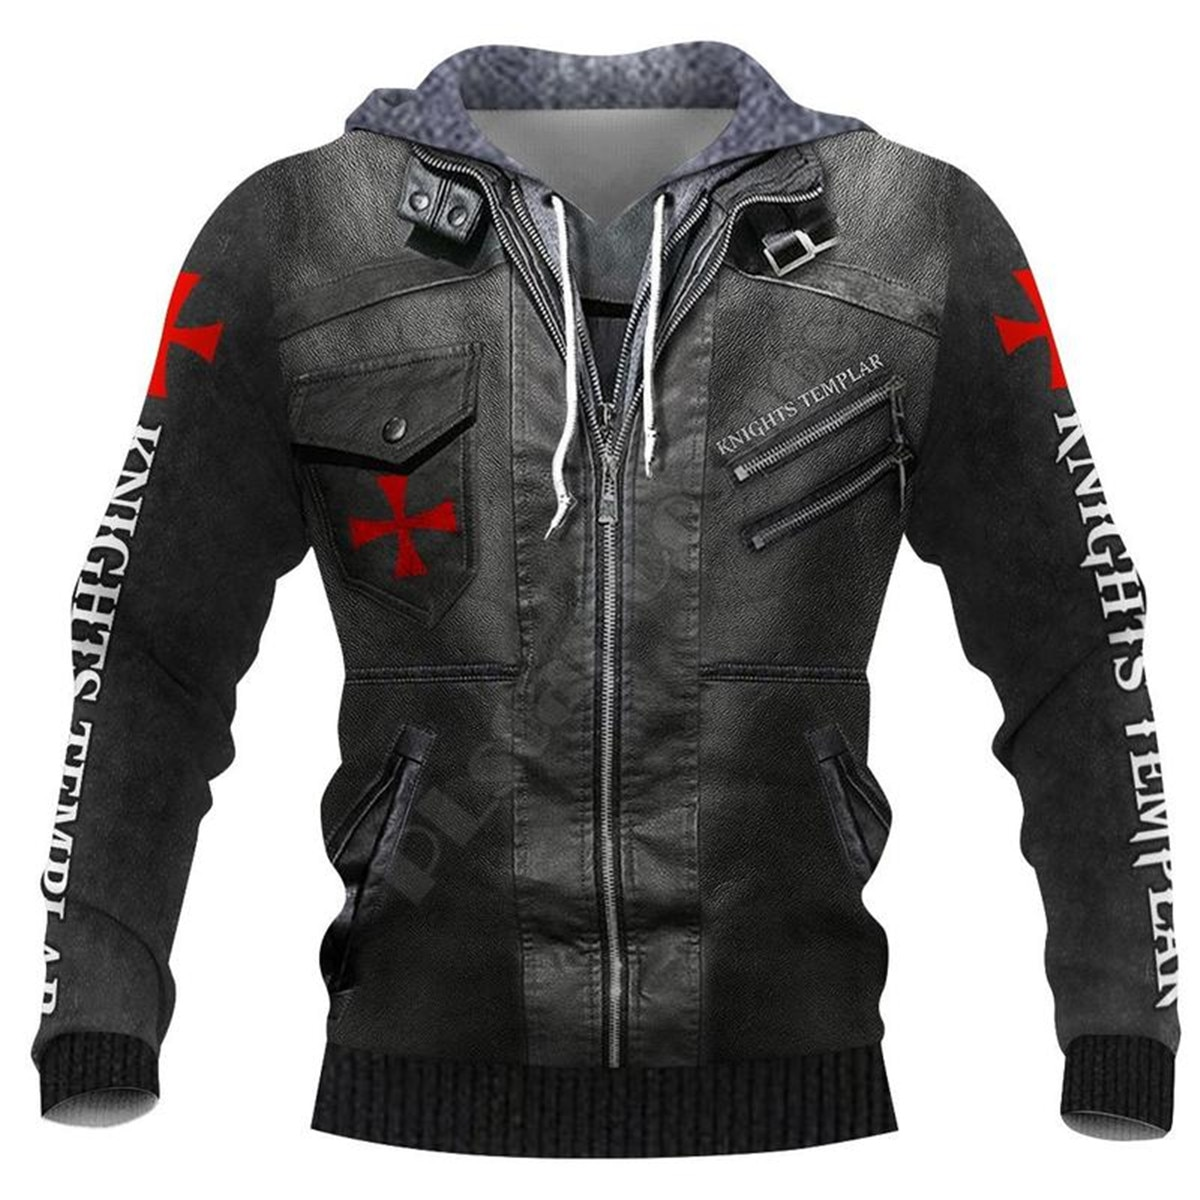 Knight Templar Armor 3D All Over Printed Hoodies Fashion Pullover Men For Women Sweatshirts Sweater Cosplay Costumes 12